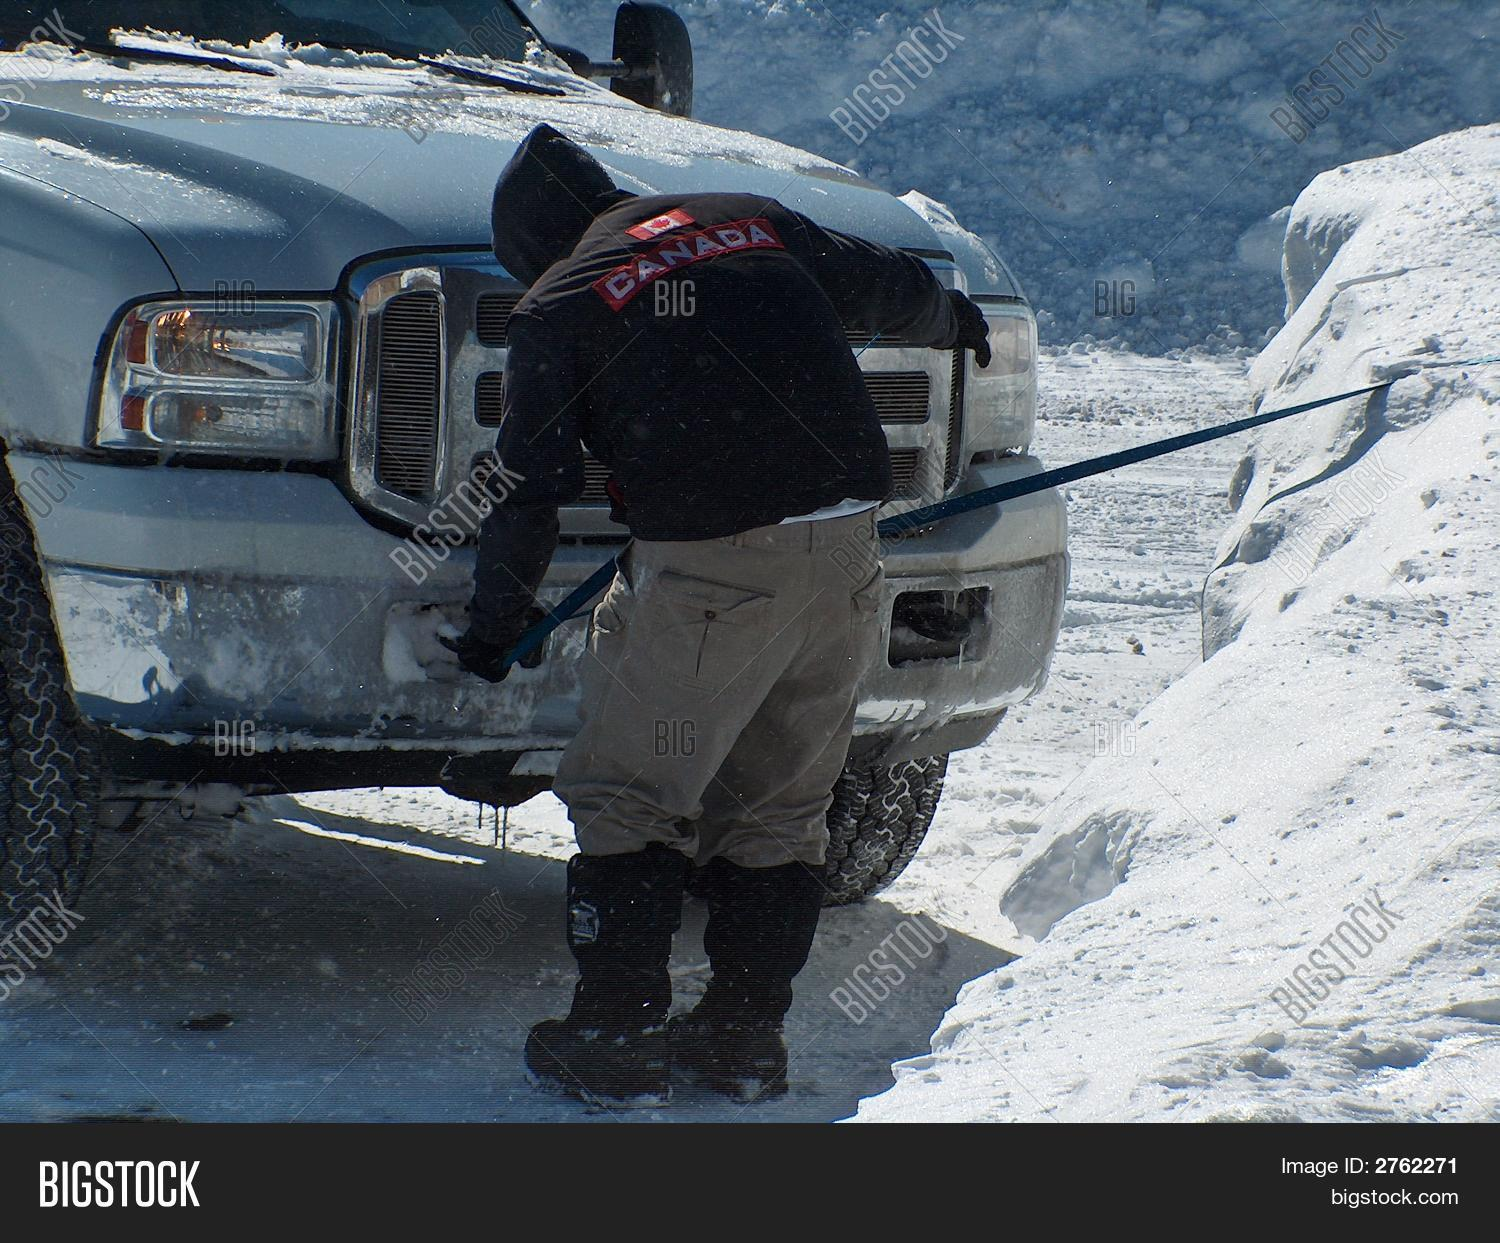 A man hooks up a line to front of a truck to pull something out of the snow